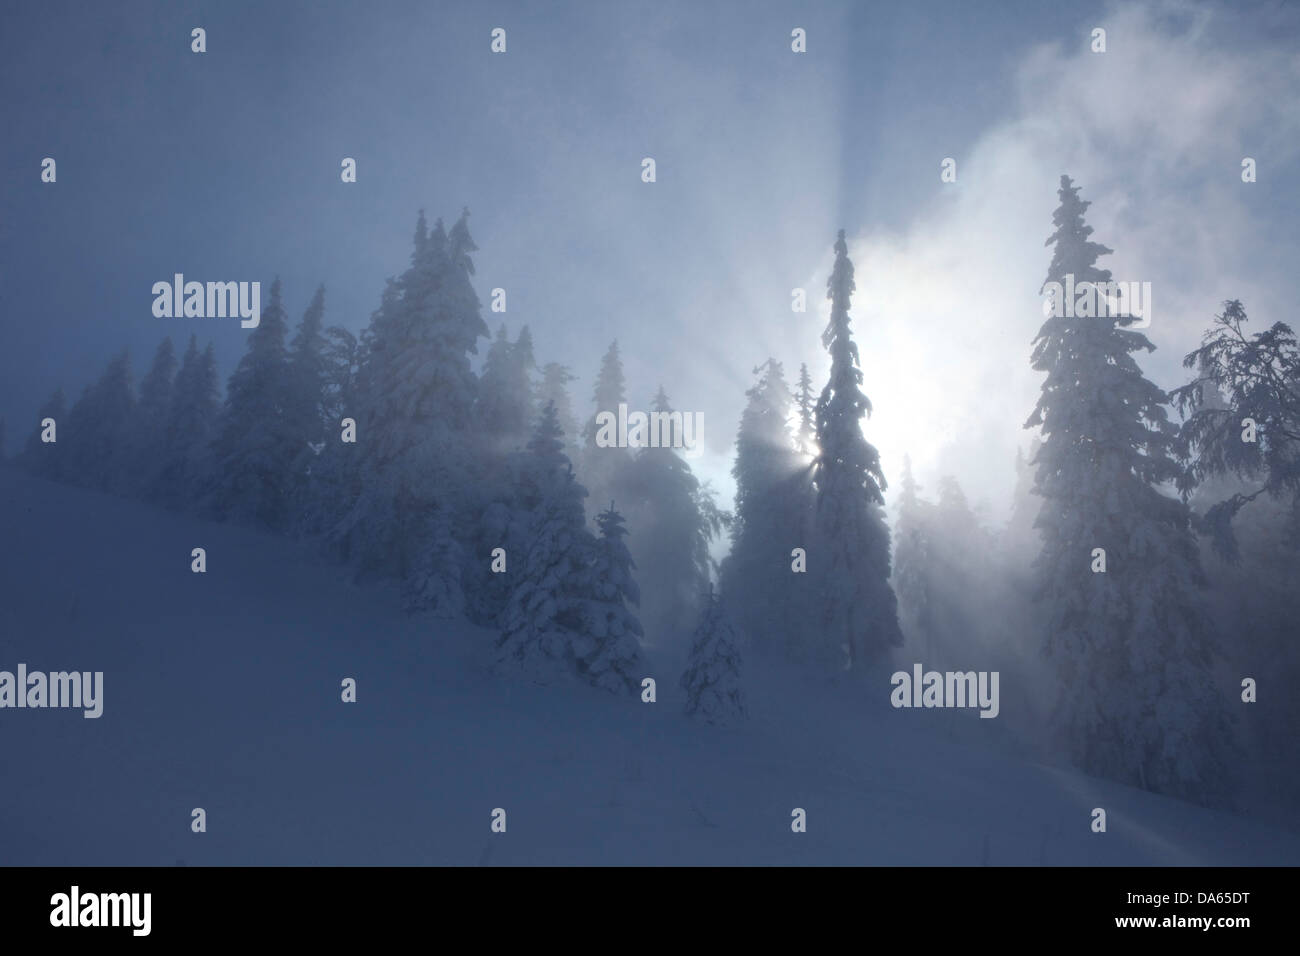 Winter trees, winter, canton, VD, Vaud, snow, tree, trees, wood, forest, snow, firs, Switzerland, Europe, sun, Col - Stock Image